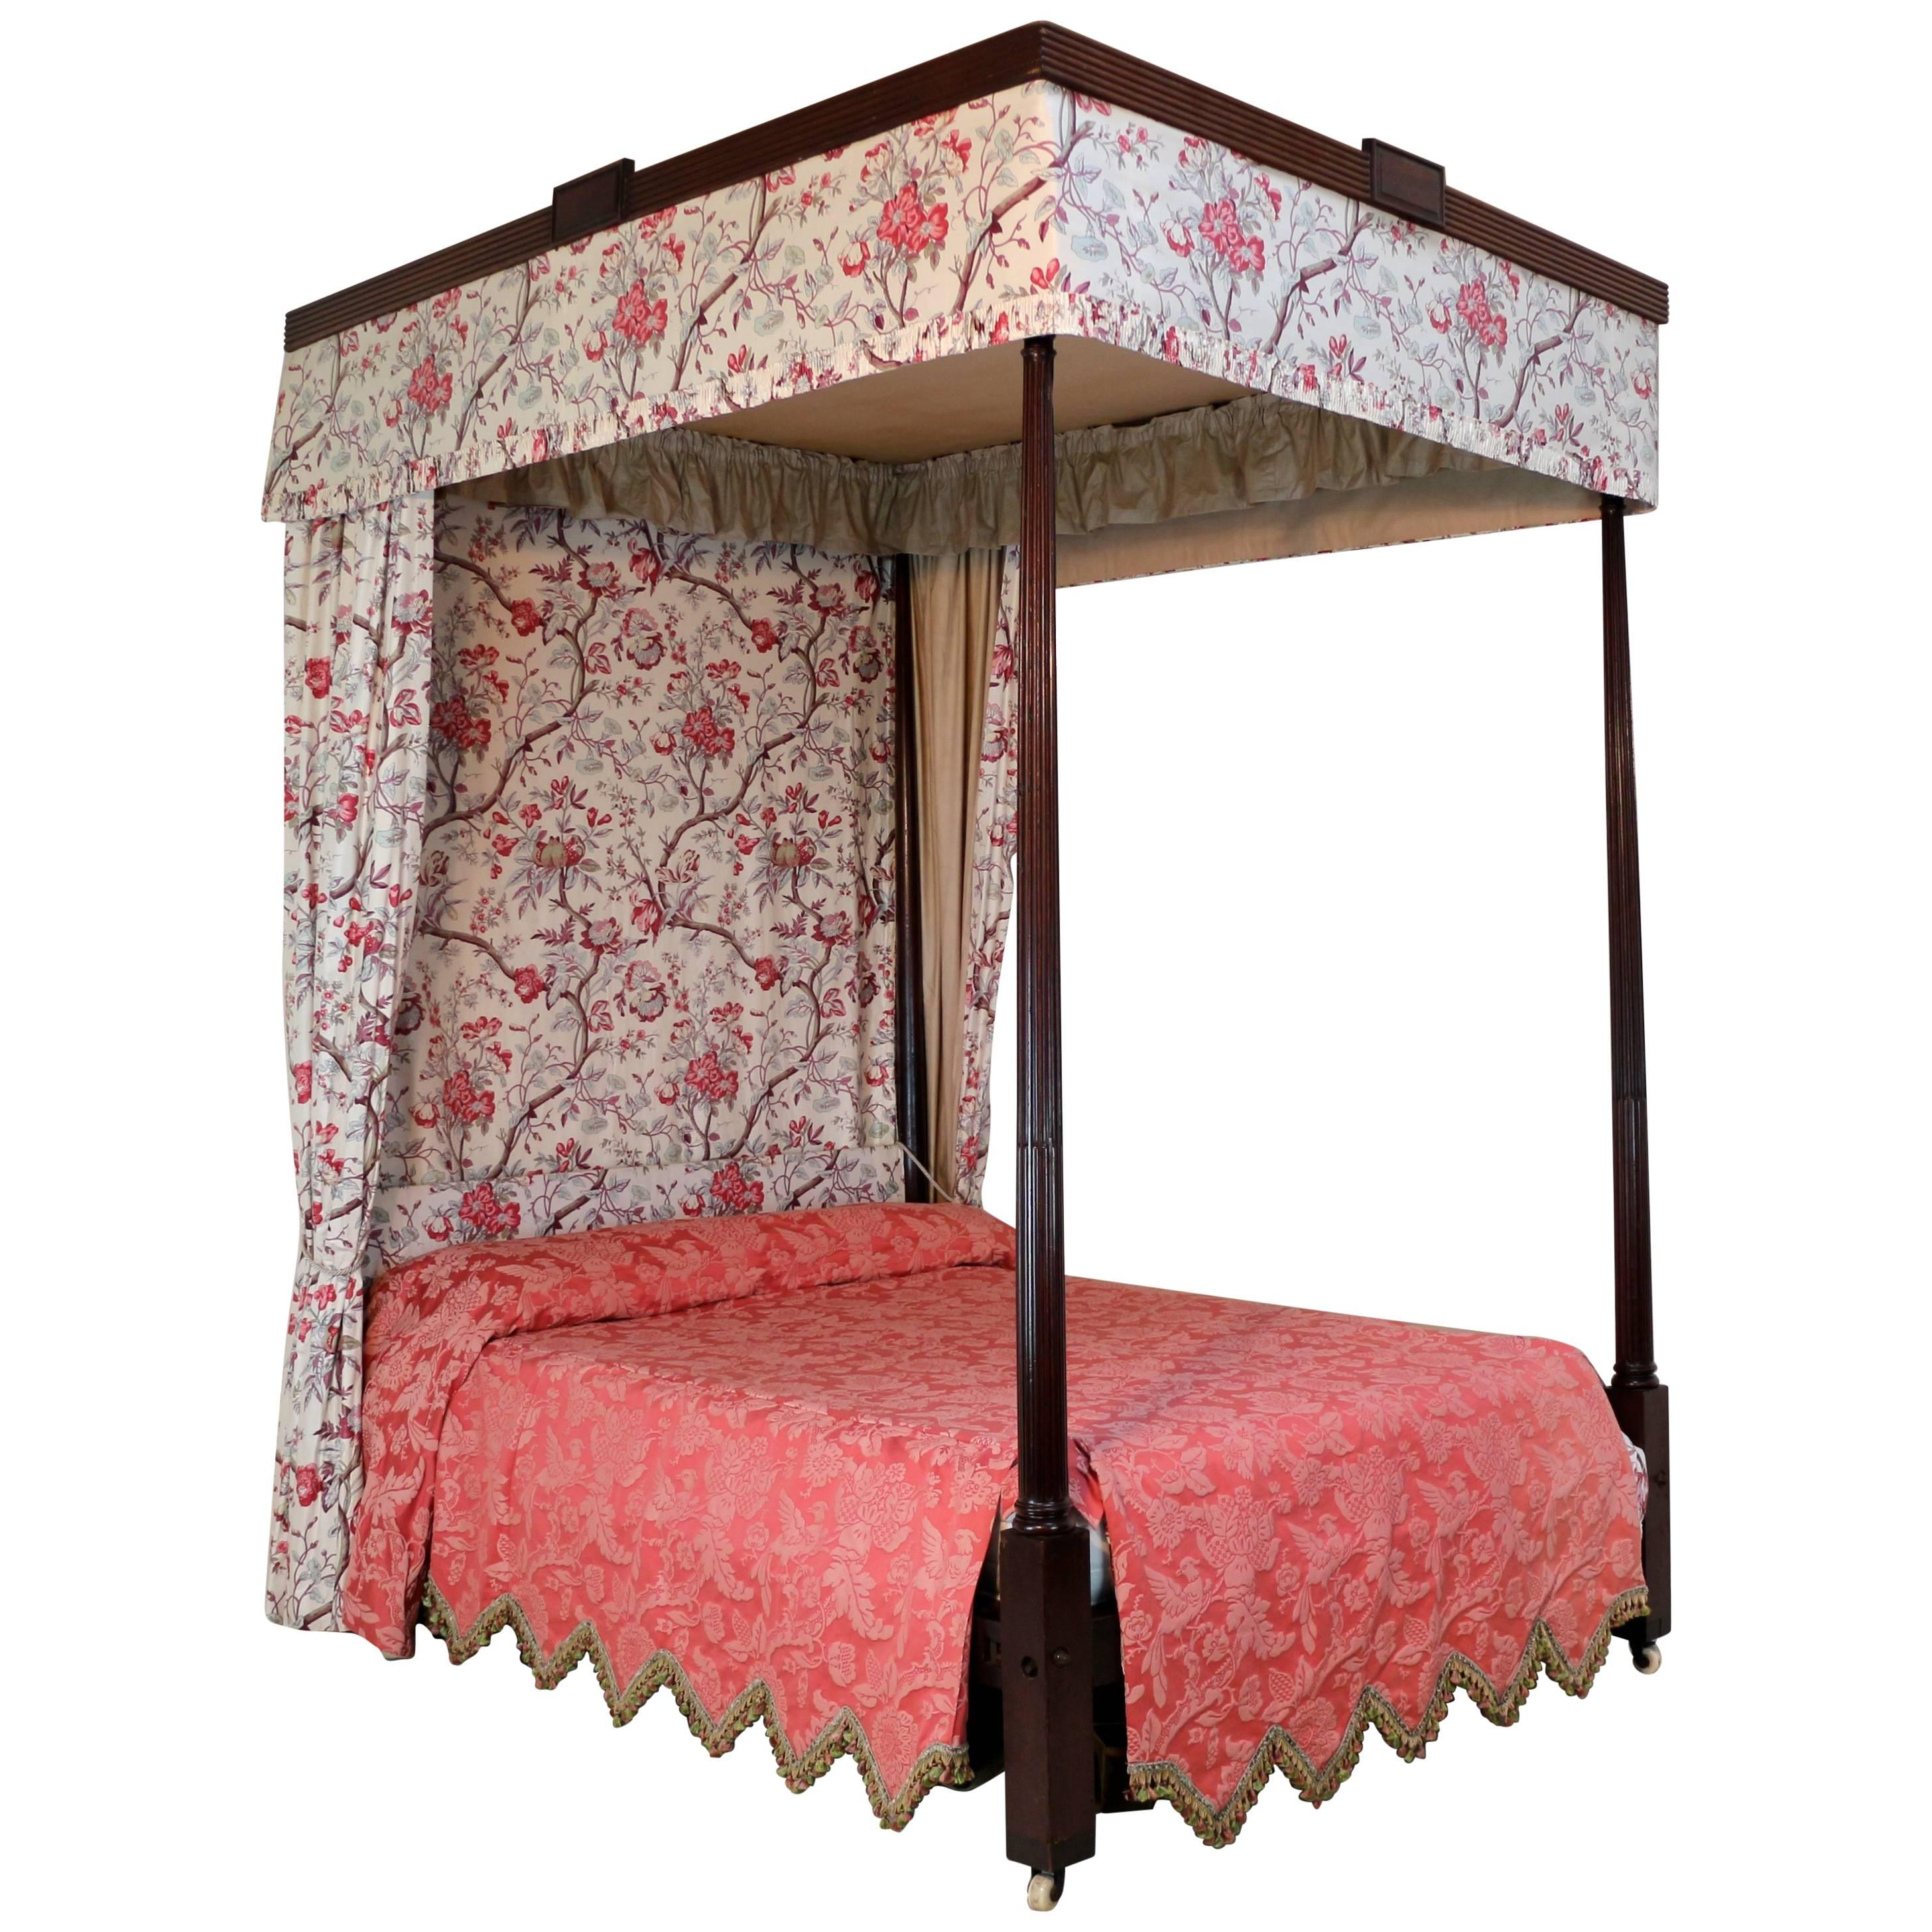 george iii mahogany fourposter bed attributed to gillows of lancaster 1